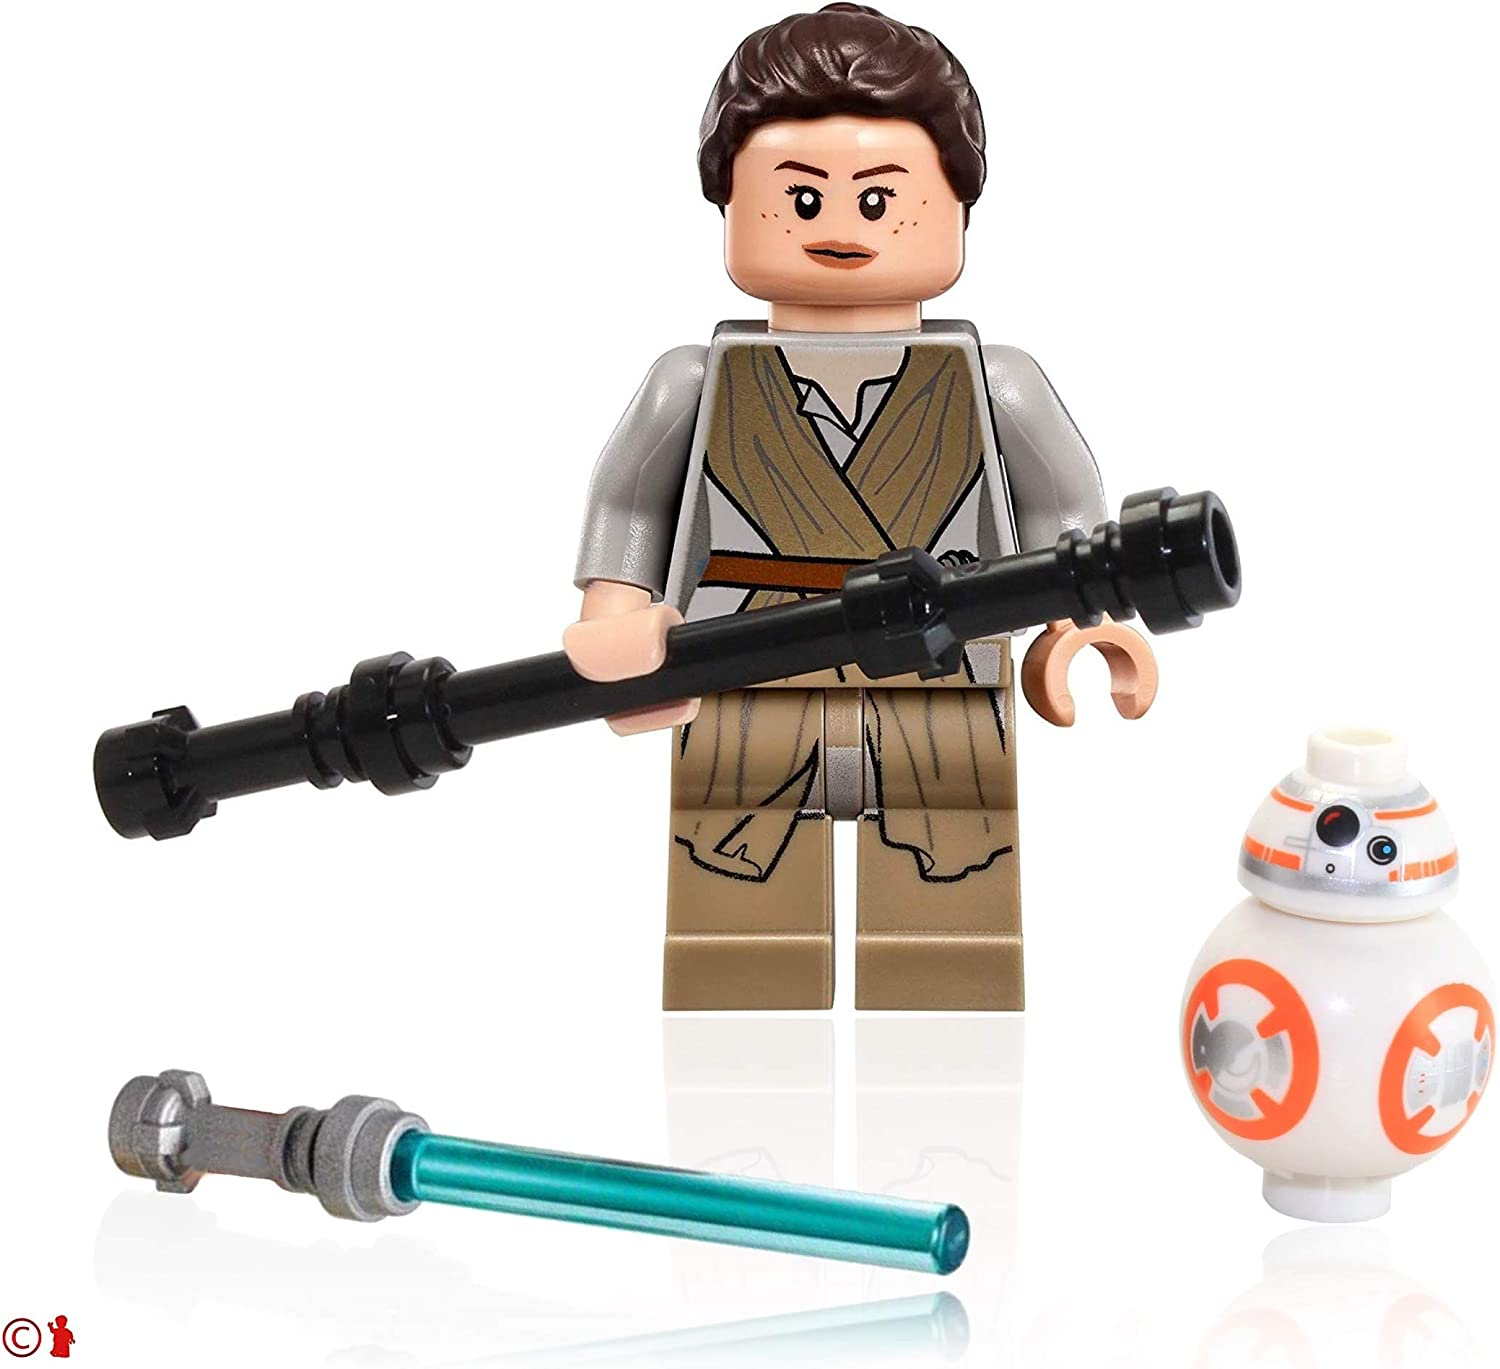 LEGO the Star Wars Rise of Skywalker Minifigure Combo - BB-8 Droid and Rey (with Black Staff)